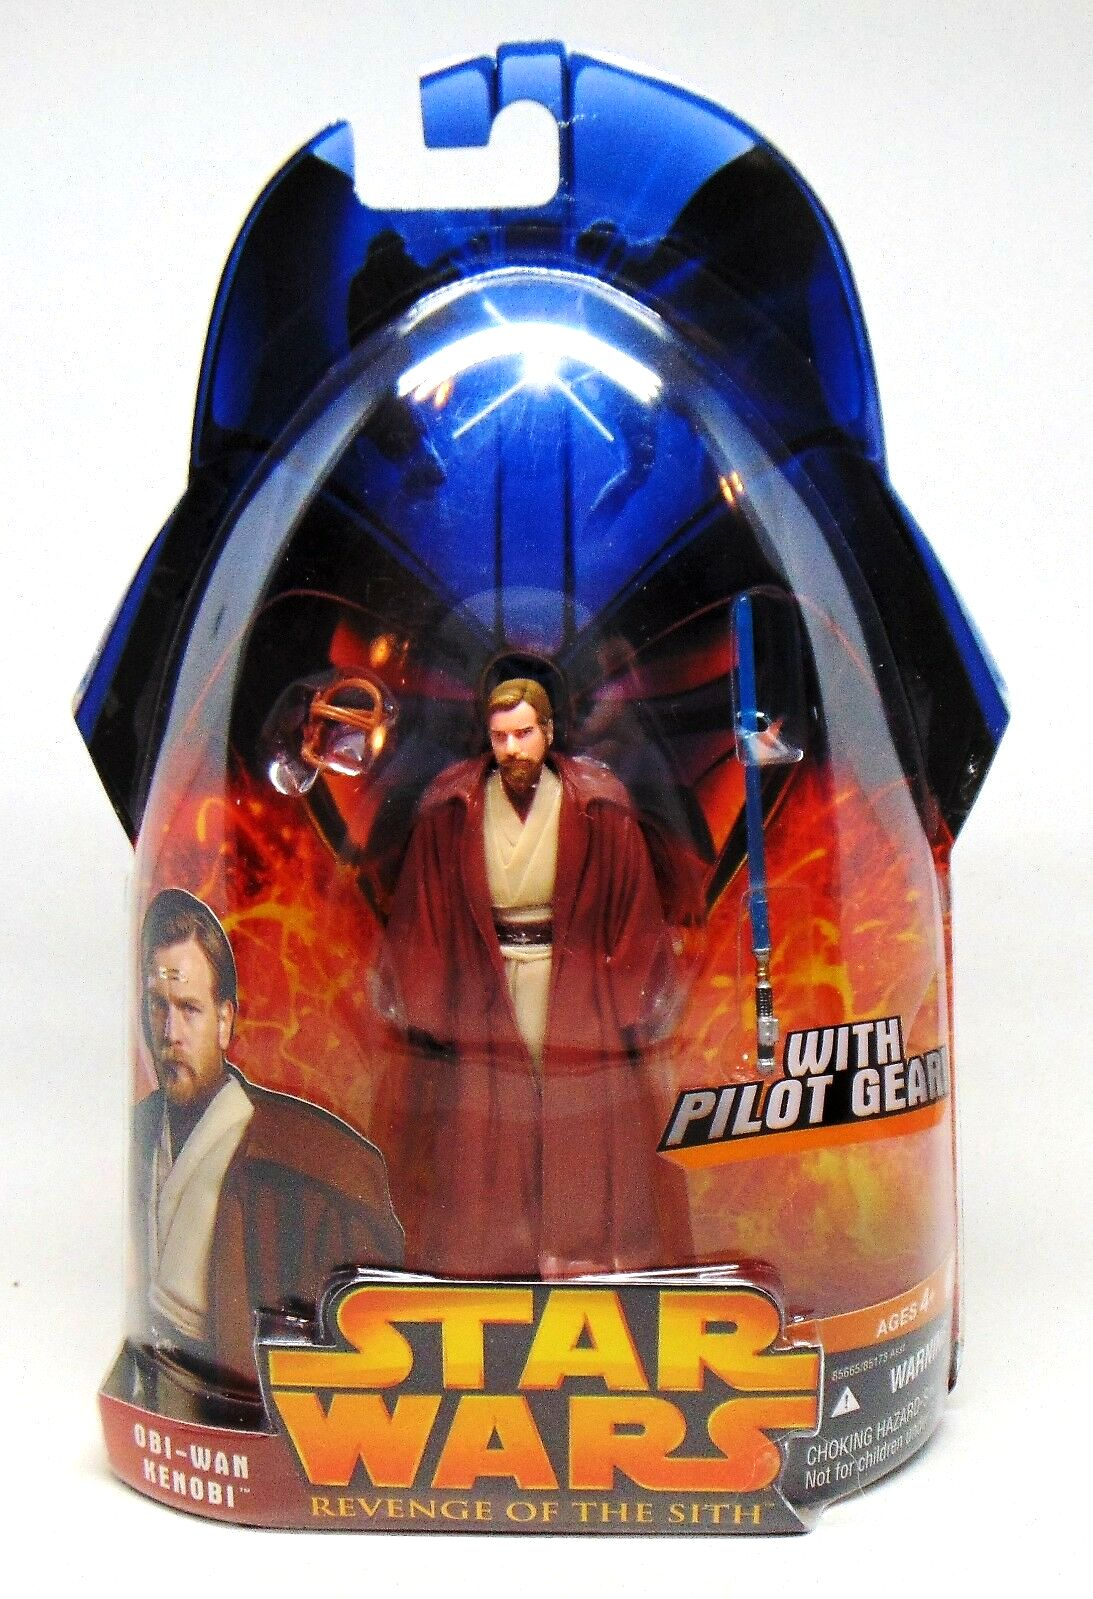 Obi Wan Kenobi With Pilot Gear 55 Star Wars Revenge Of The Sith Ep Iii Vintage Collection 1 Series Rare Vintage 2005 Now And Then Collectibles